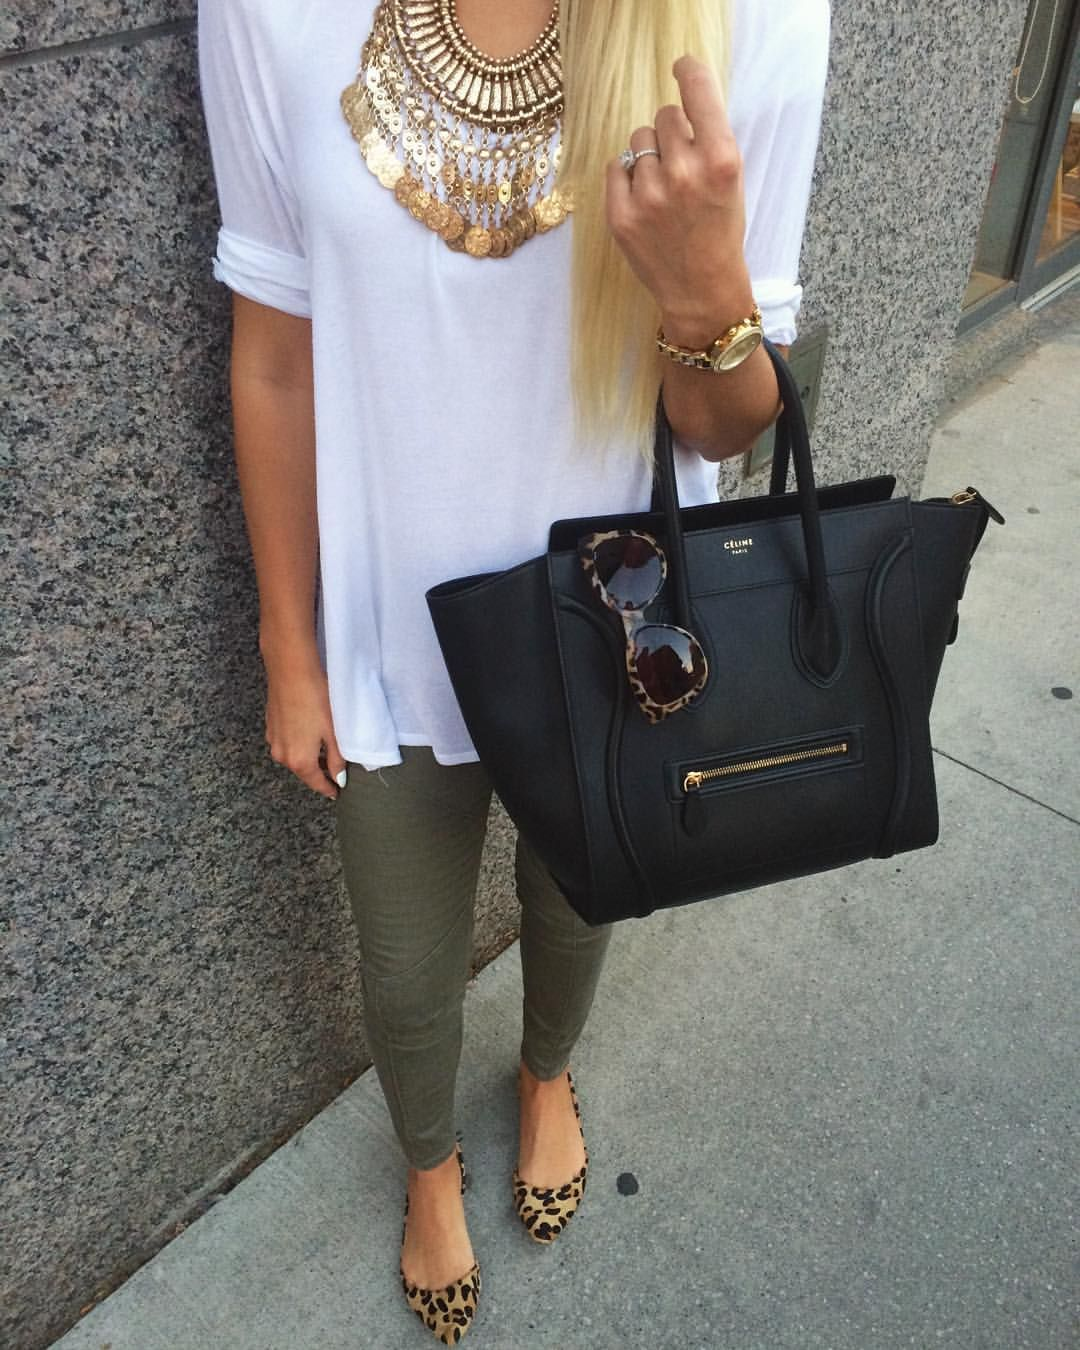 77b0e268 Ootd / Celine / gold coin necklace / leopard flats | My Instagram ...